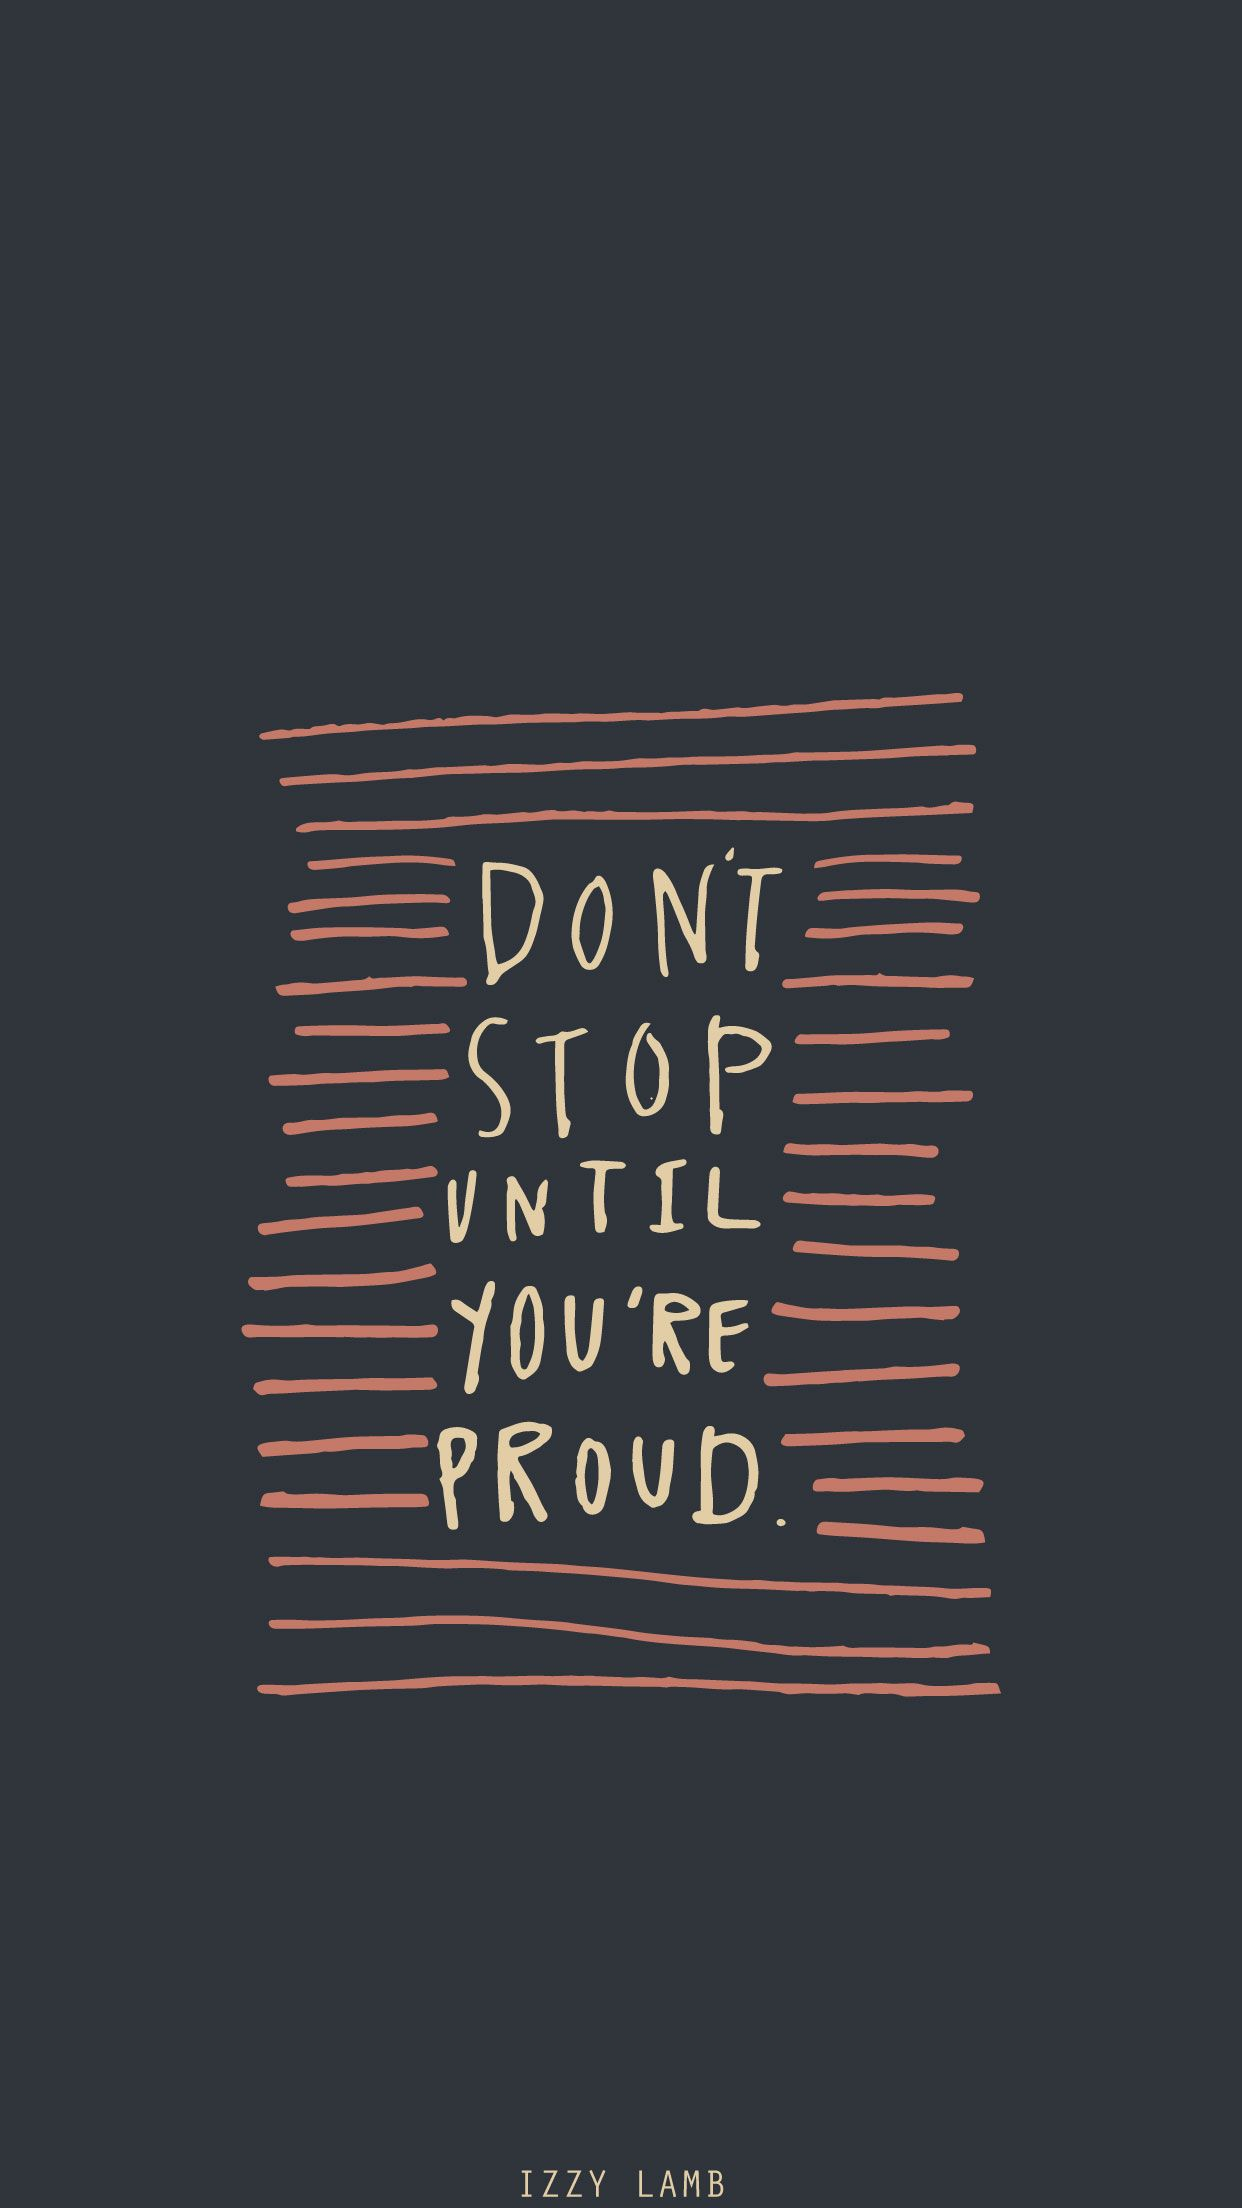 Inspirational Quotes Iphone Wallpaper Don't Stop Until You're Proud wallpaper #iphone #wallpaper  Inspirational Quotes Iphone Wallpaper